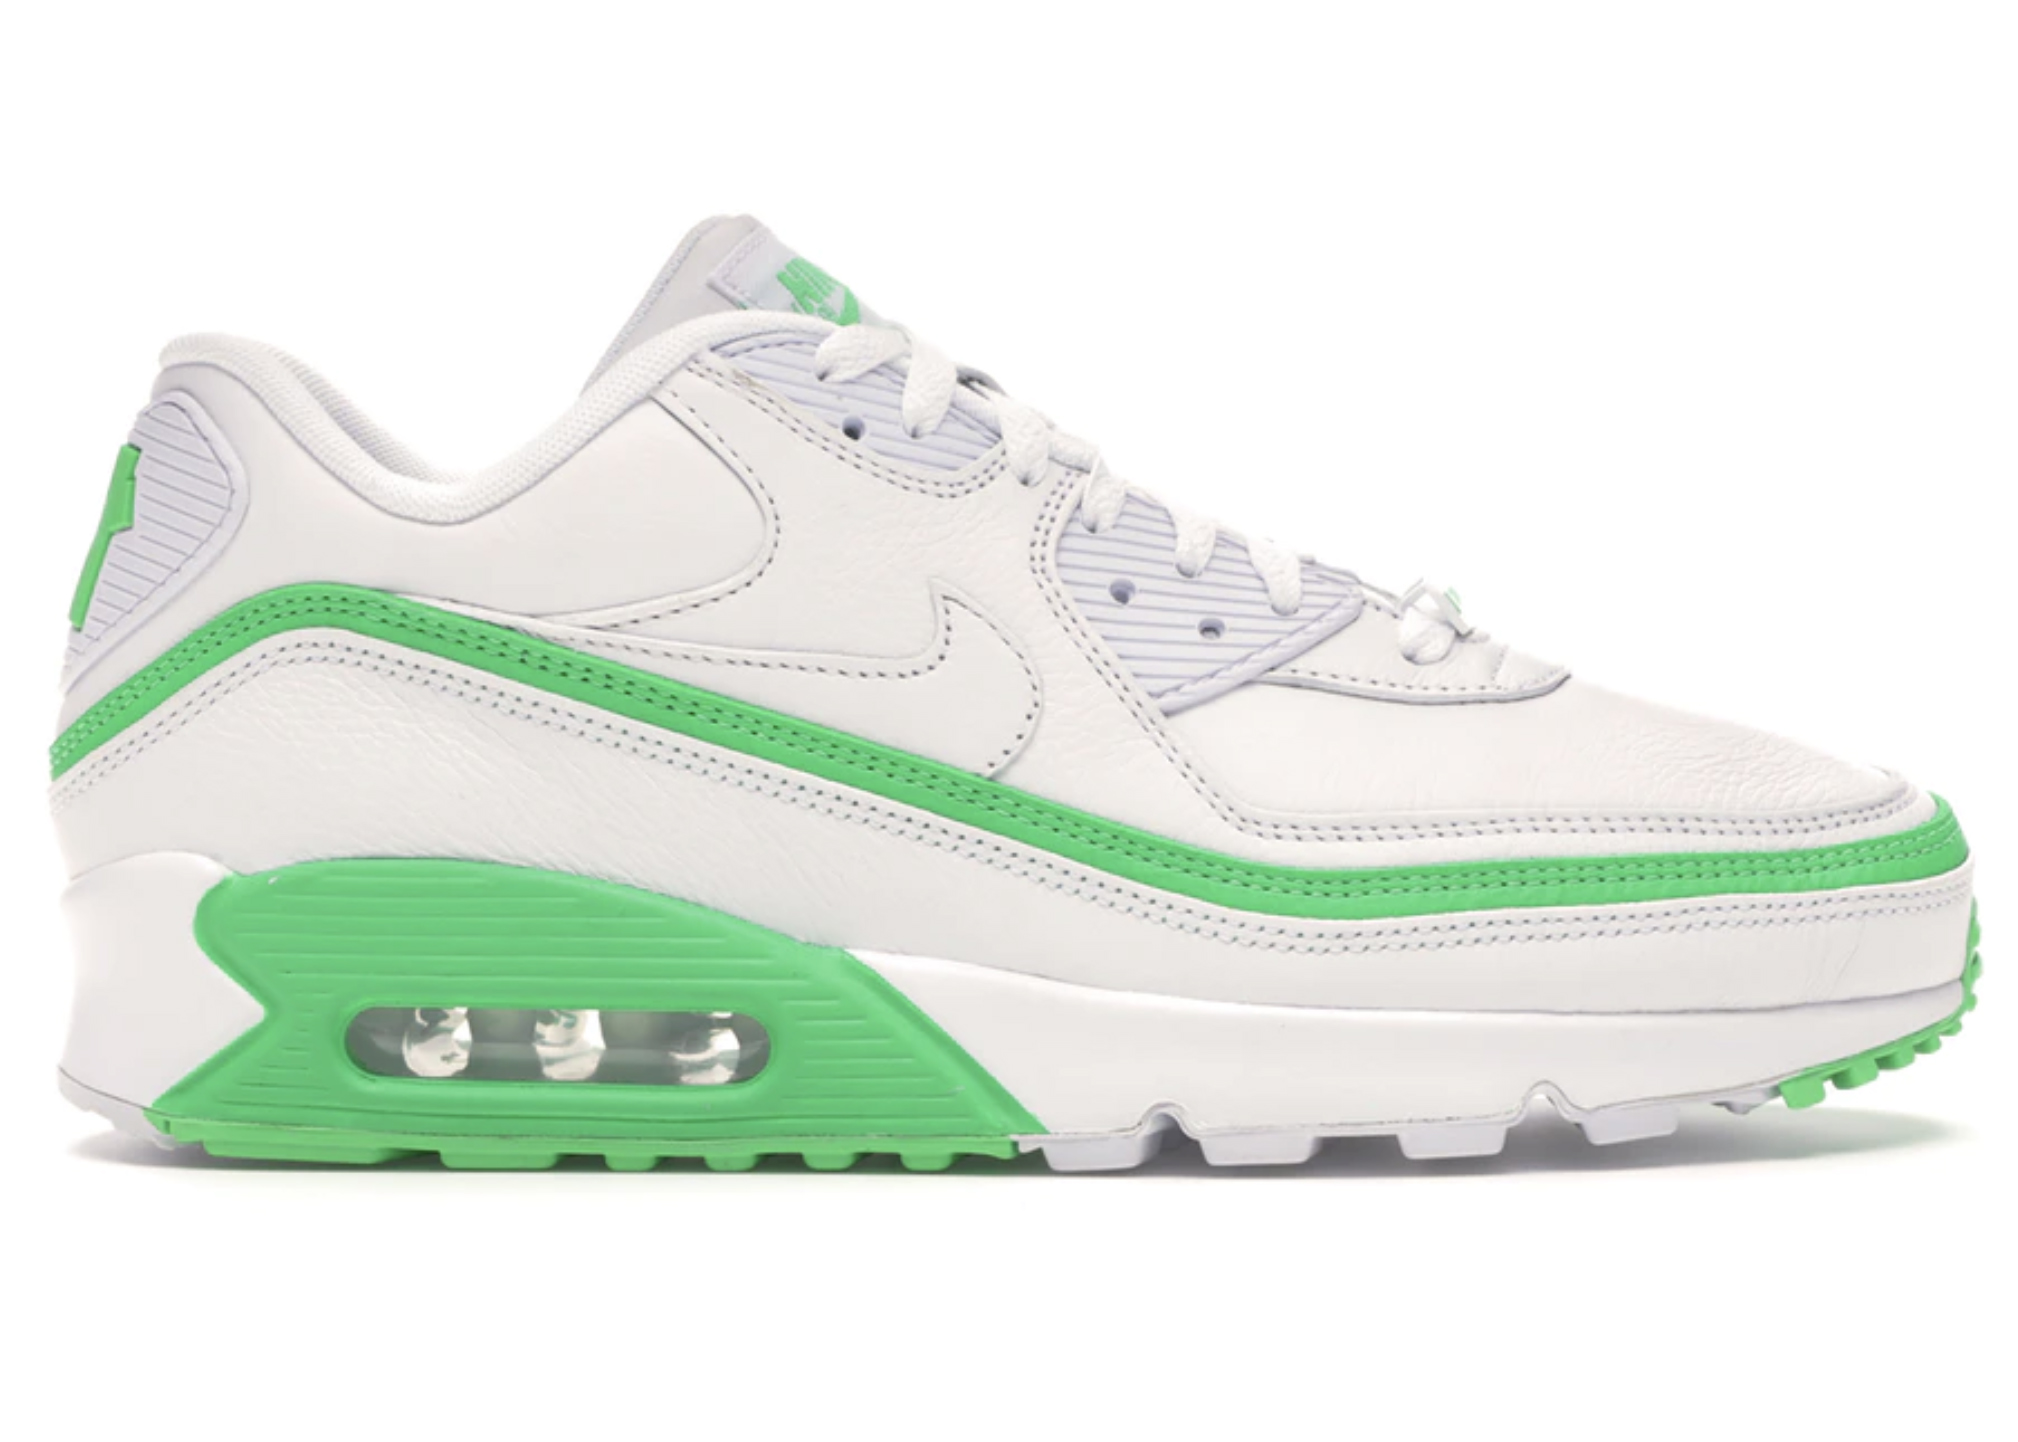 Nike Air Max 90 Undefeated White Green